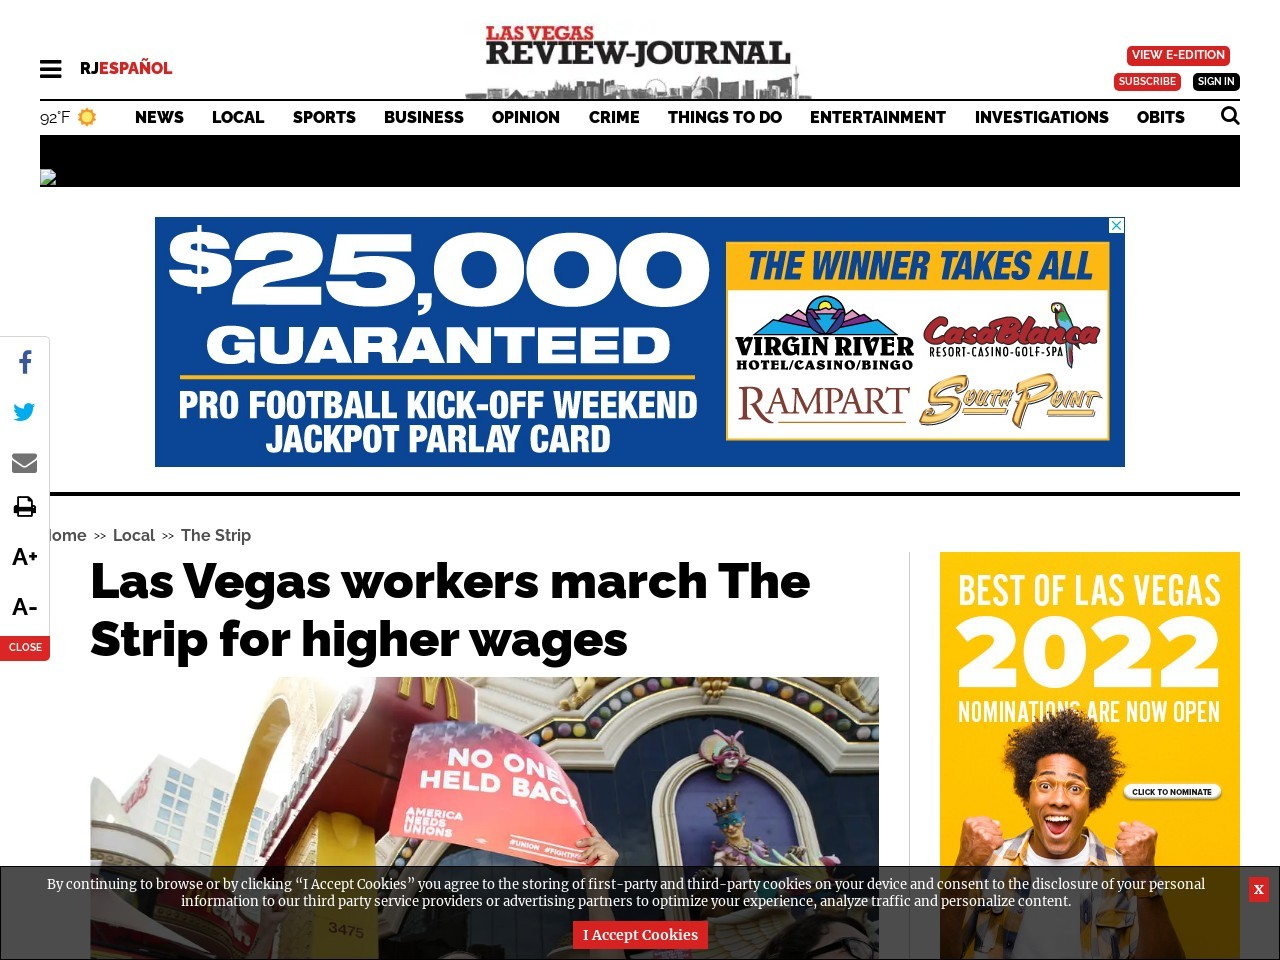 Las Vegas workers march The Strip for higher wages